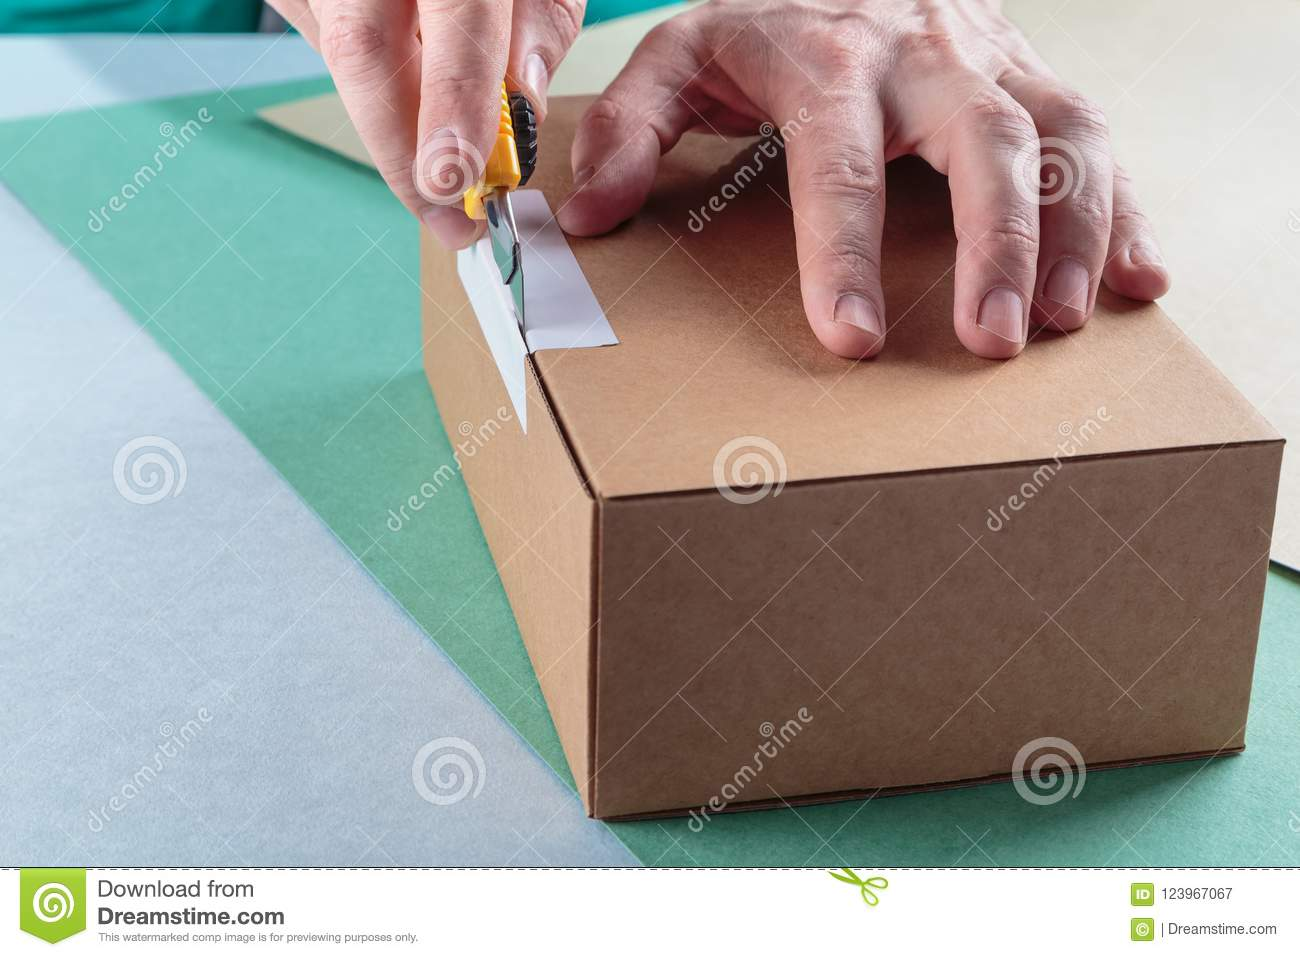 Unboxing the parcels Packed